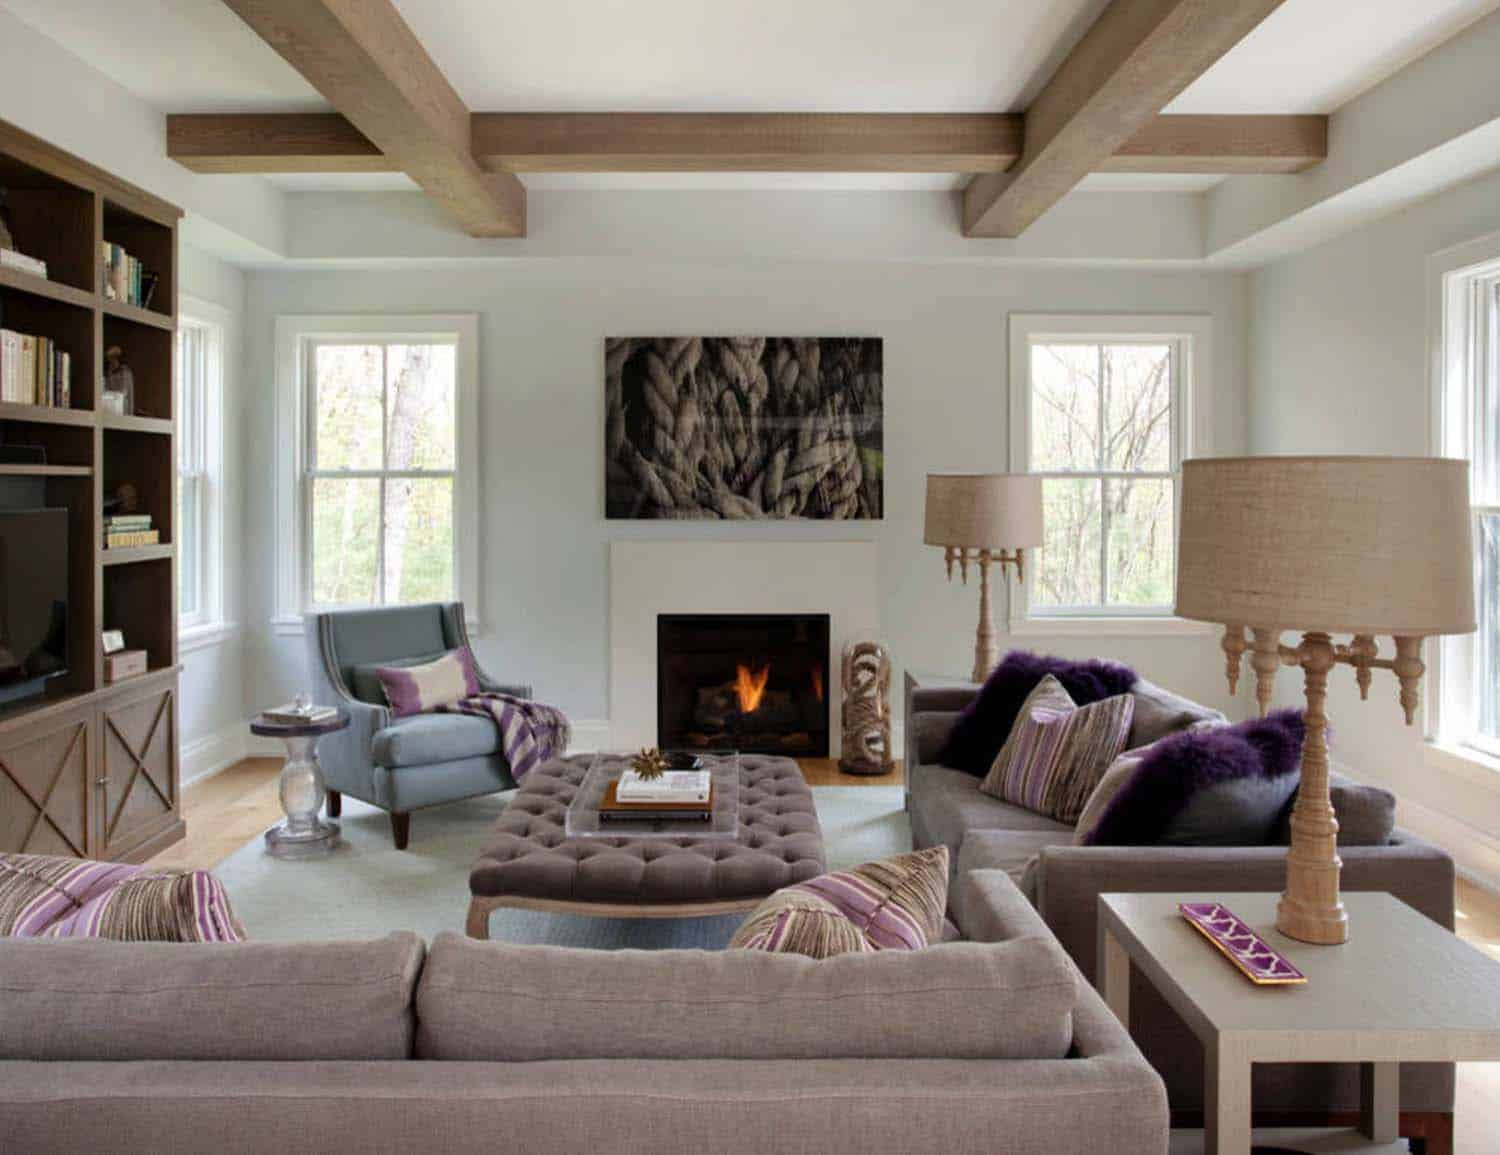 Contemporary Farmhouse Style-Marcus Gleysteen Architects-02-1 Kindesign